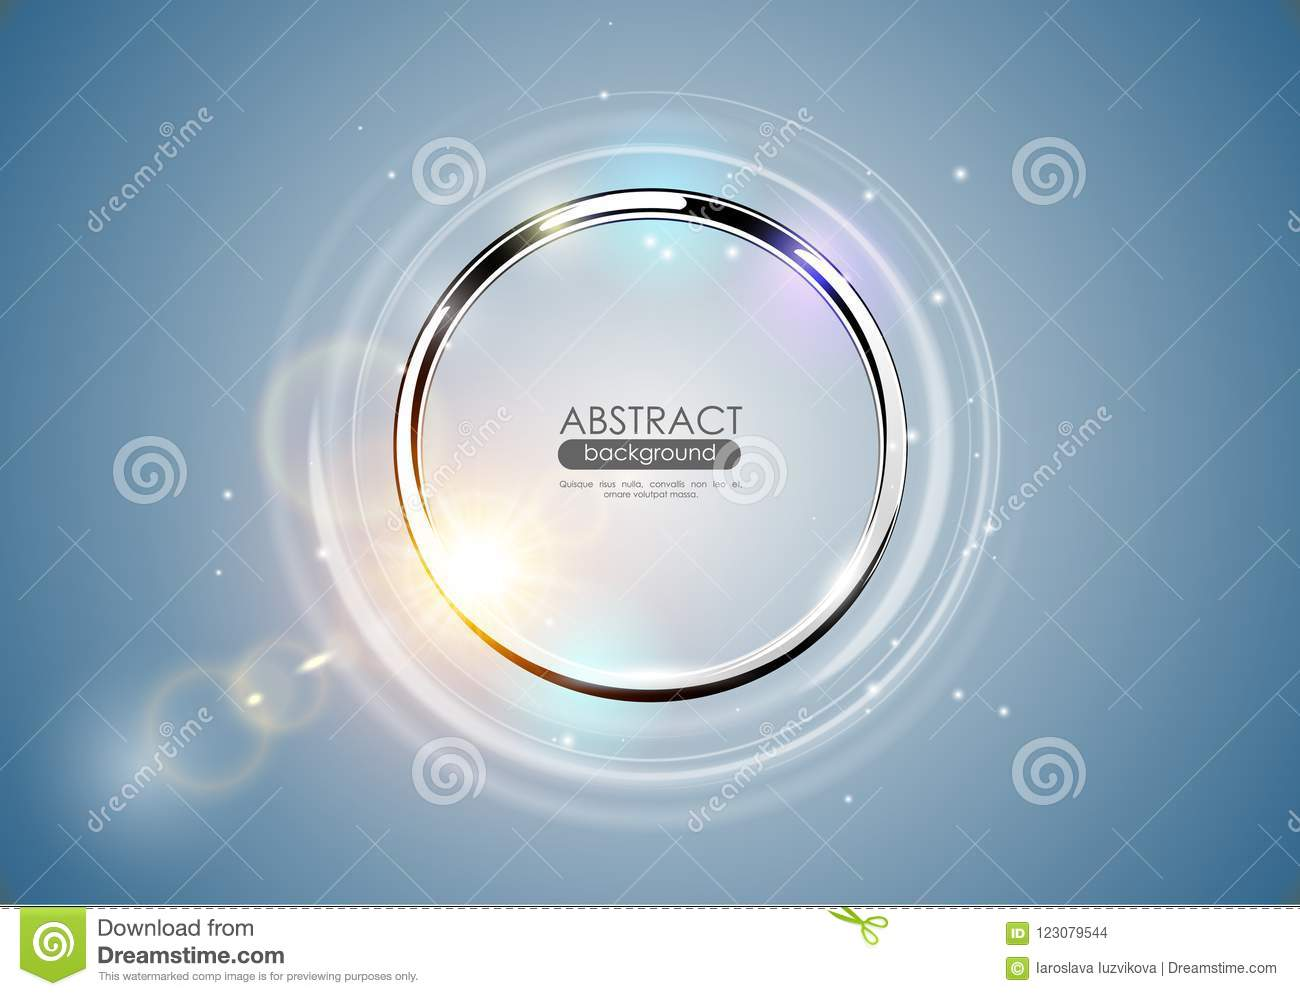 Futuristic abstract metal ring blue background. Chrome shine round frame with light circle and sun lens flare light effect. Vector